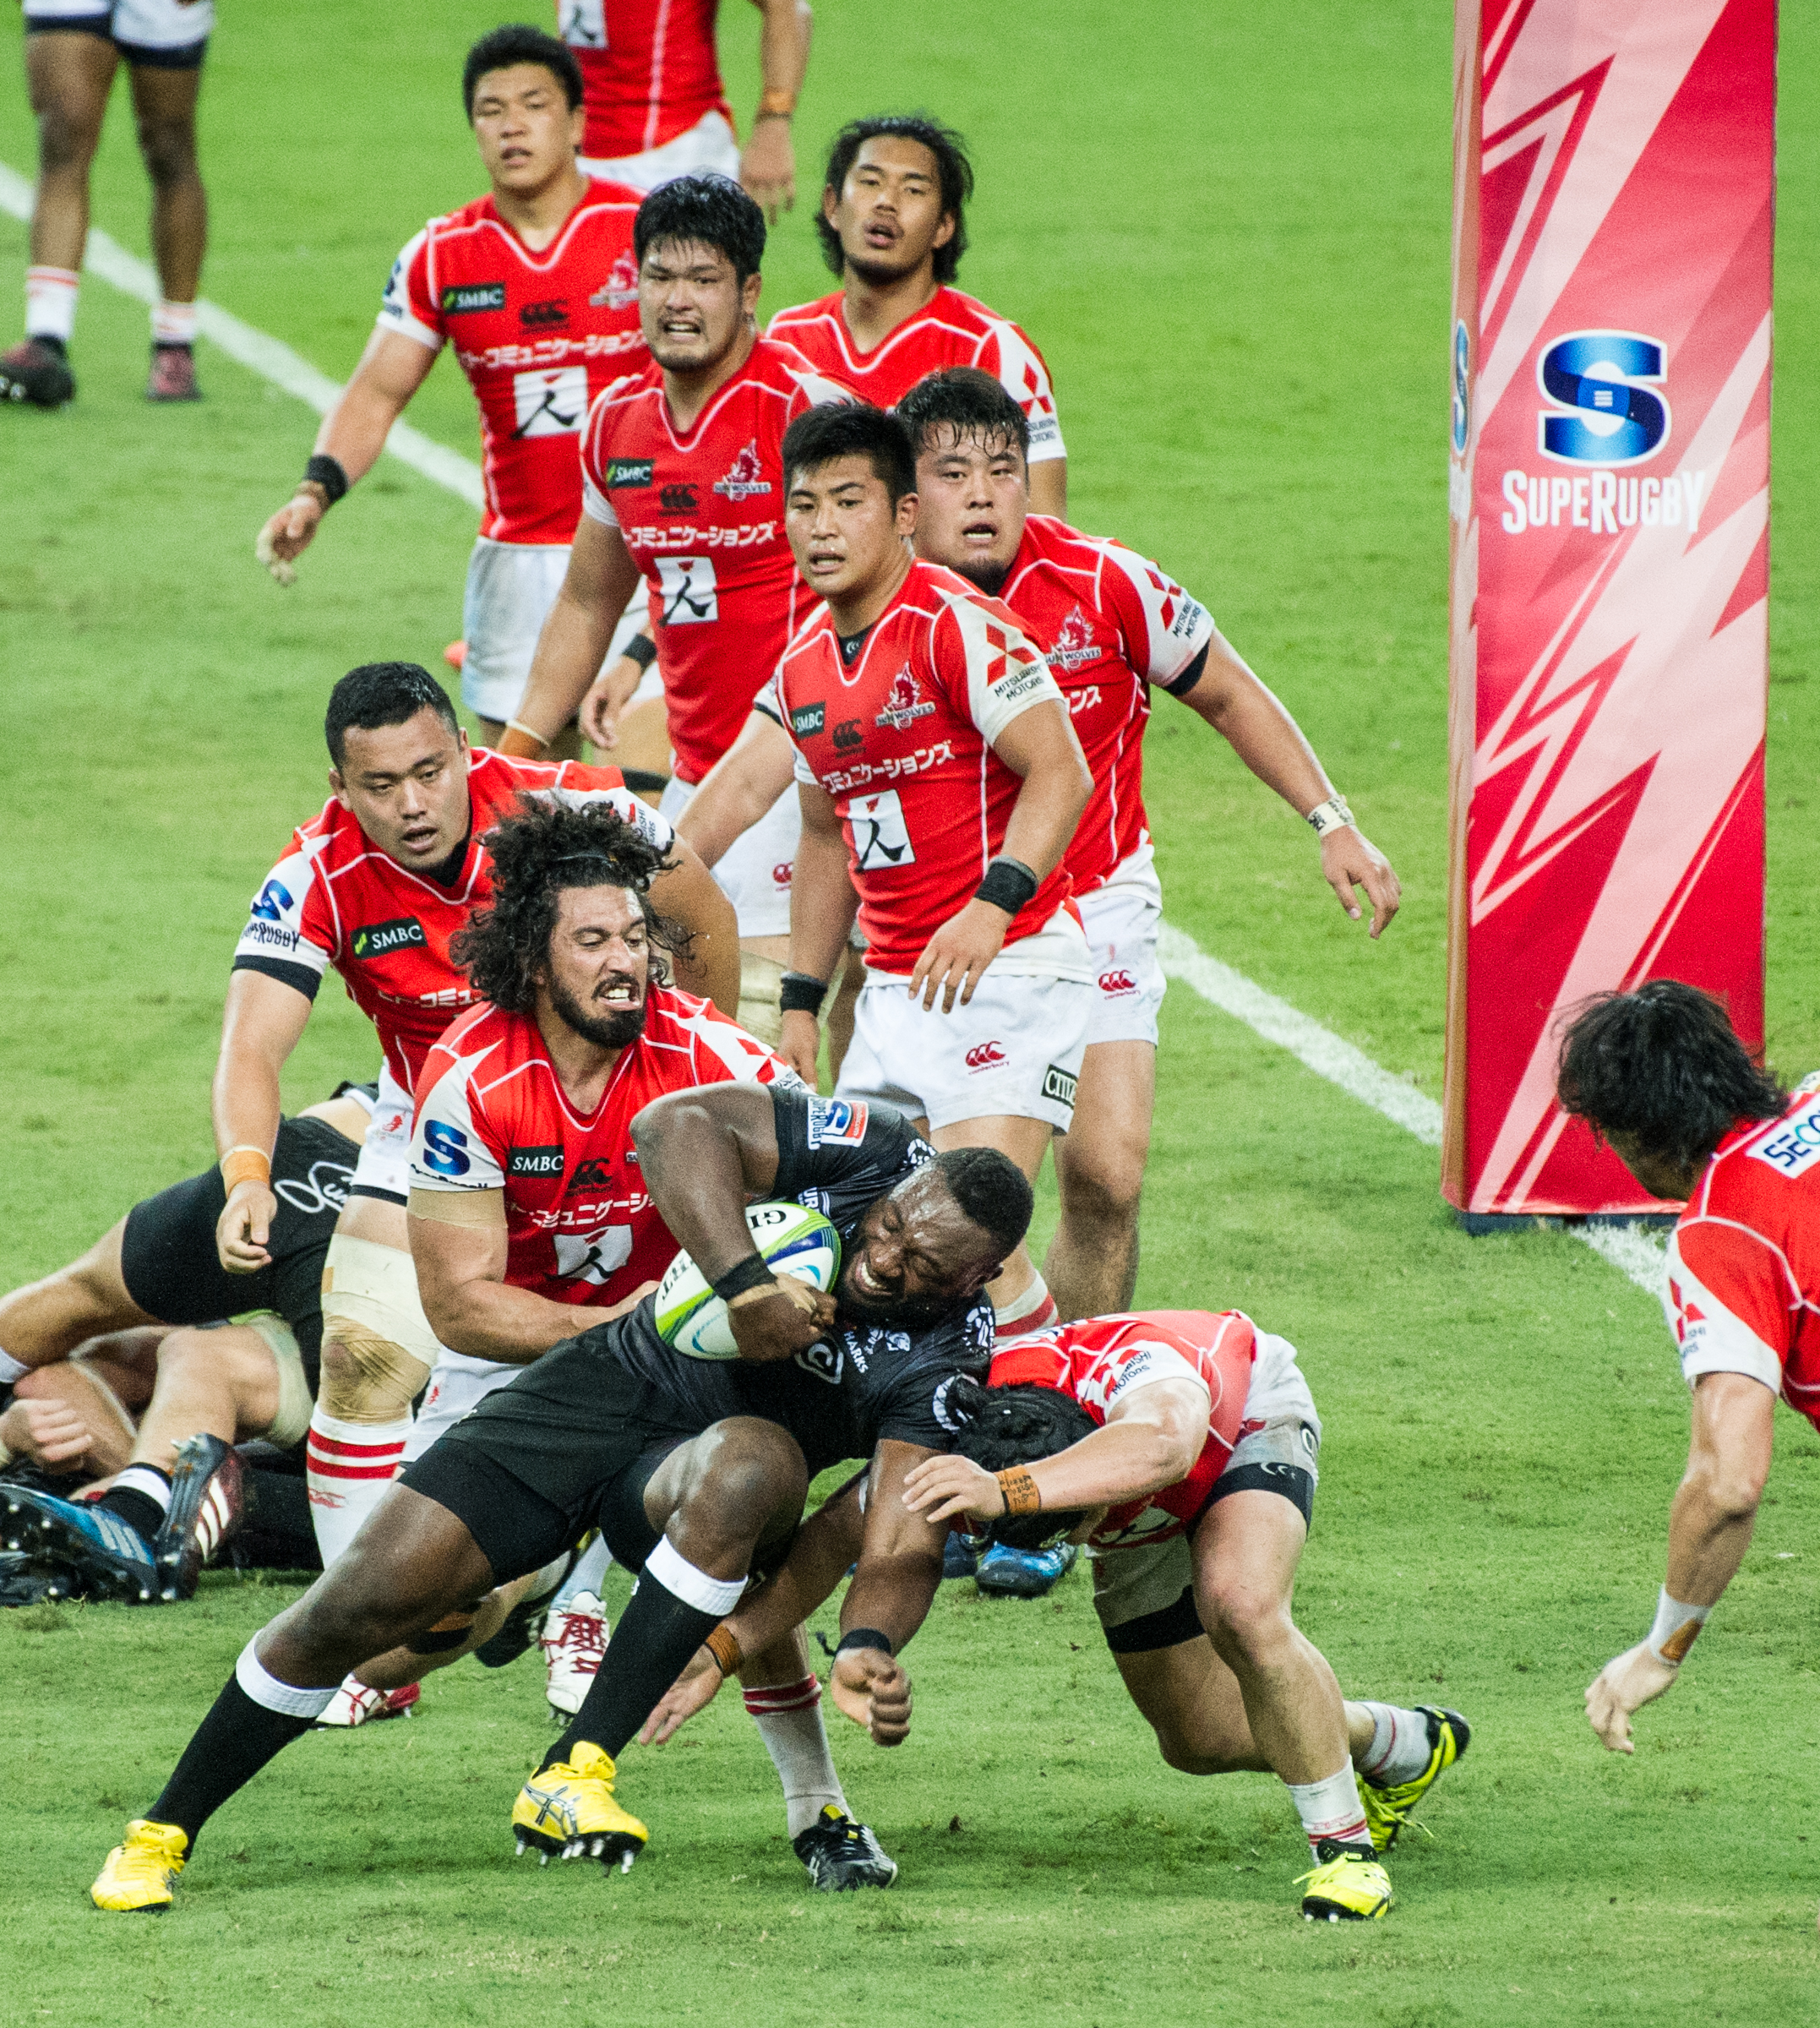 A South African player charges past a pack of Japanese players during a Super Rugby match at the Singapore Sports Hub.